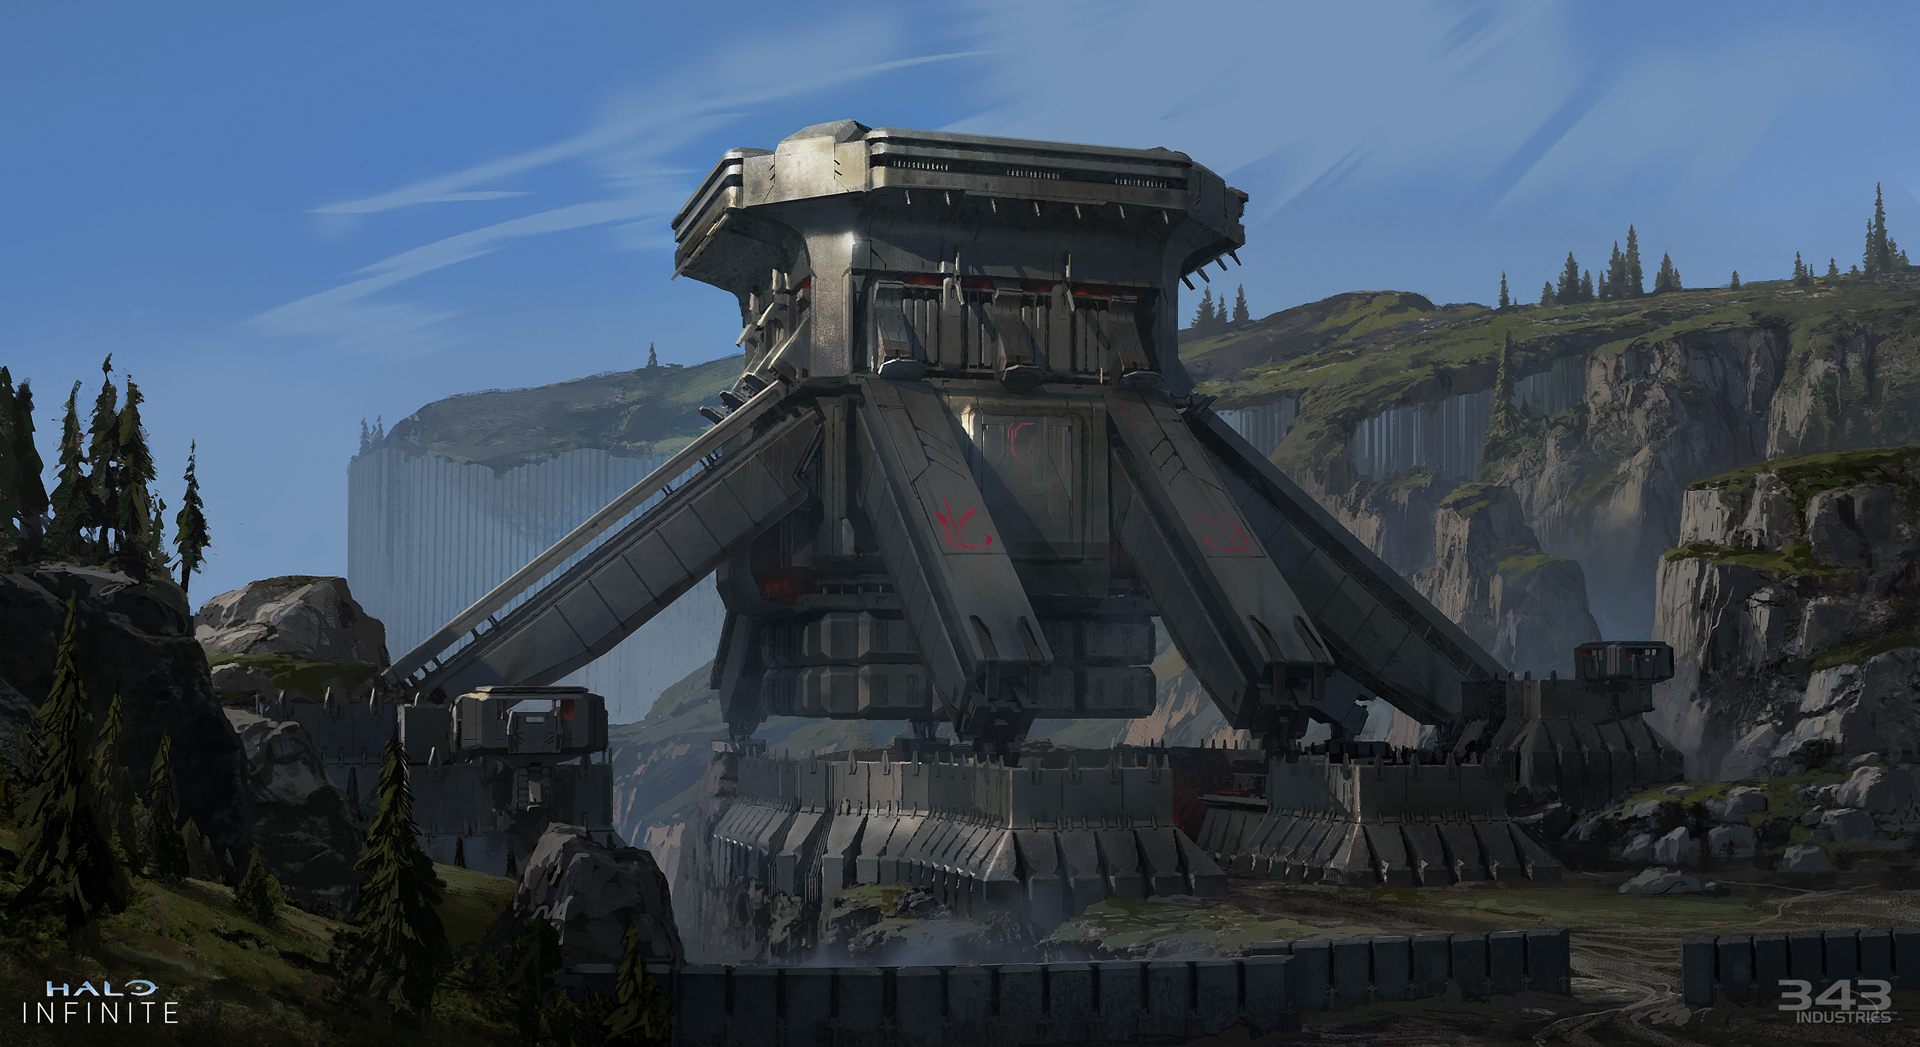 hi banished tower concept 1920x1047 dae4d220daca4195a3722931e7369847